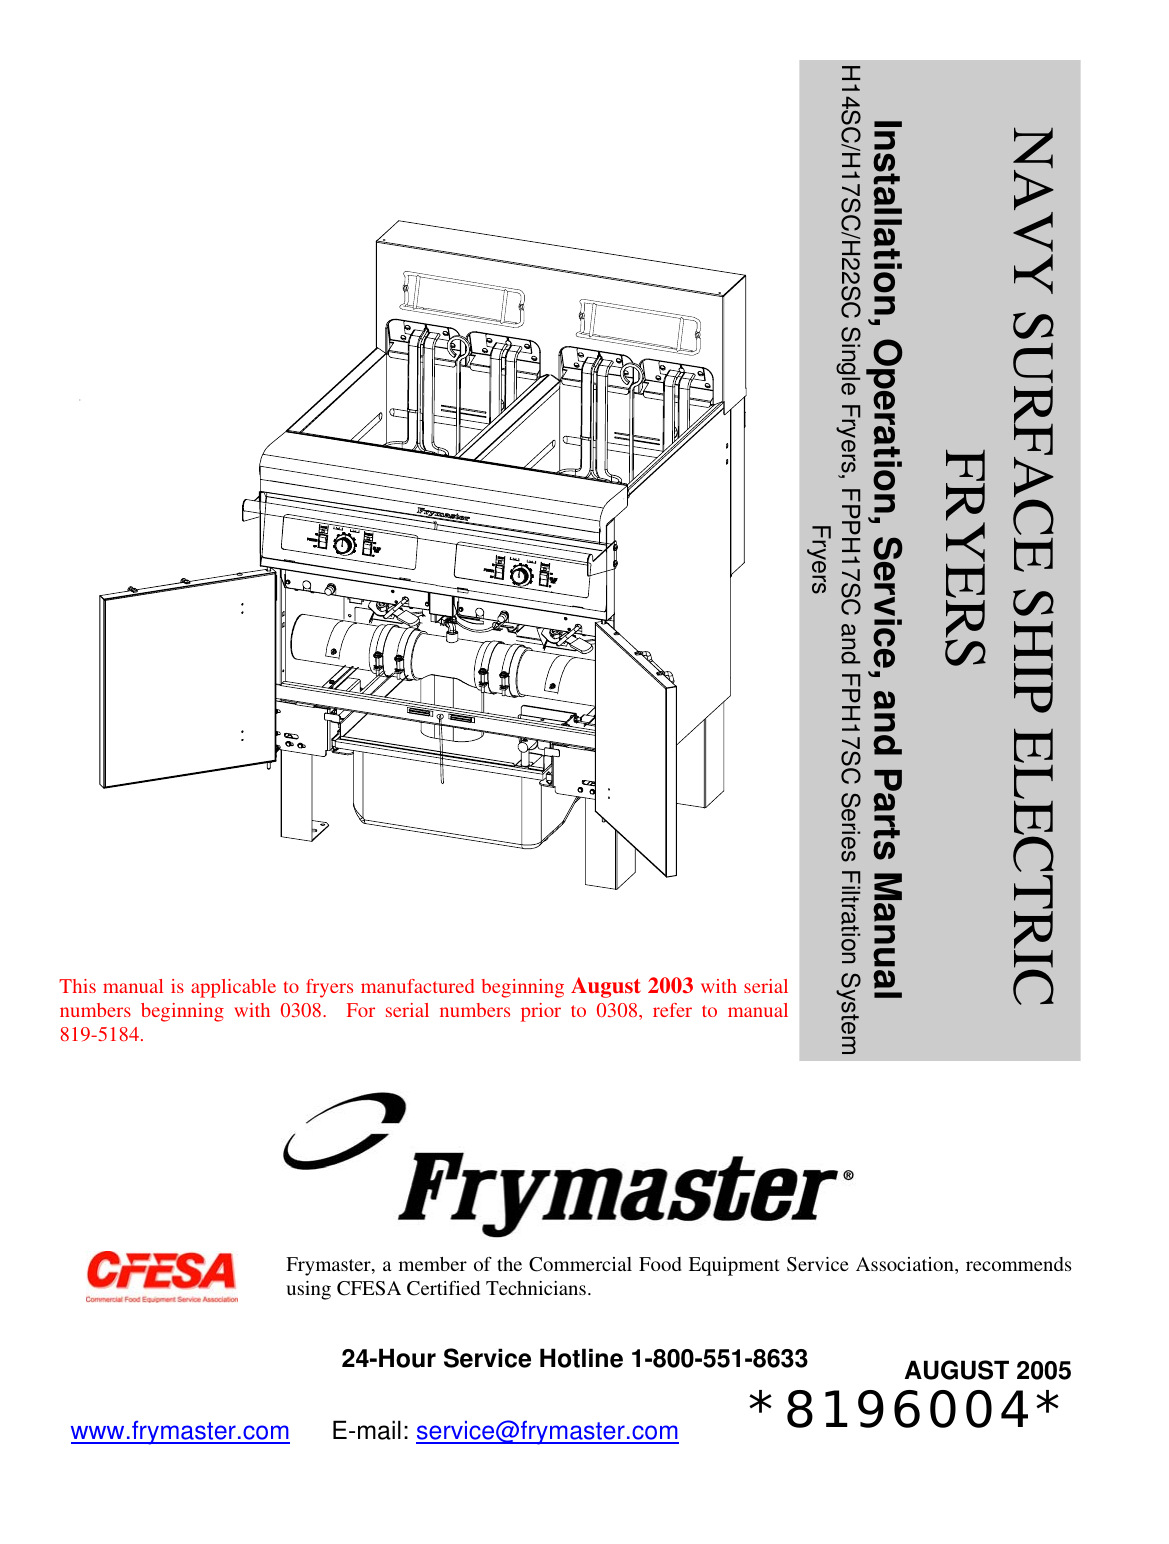 imperial deep fryer wiring diagram Download-Imperial Deep Fryer Wiring Diagram Fresh Pitco Fryer Troubleshooting Manual Image Collections Free 12-j